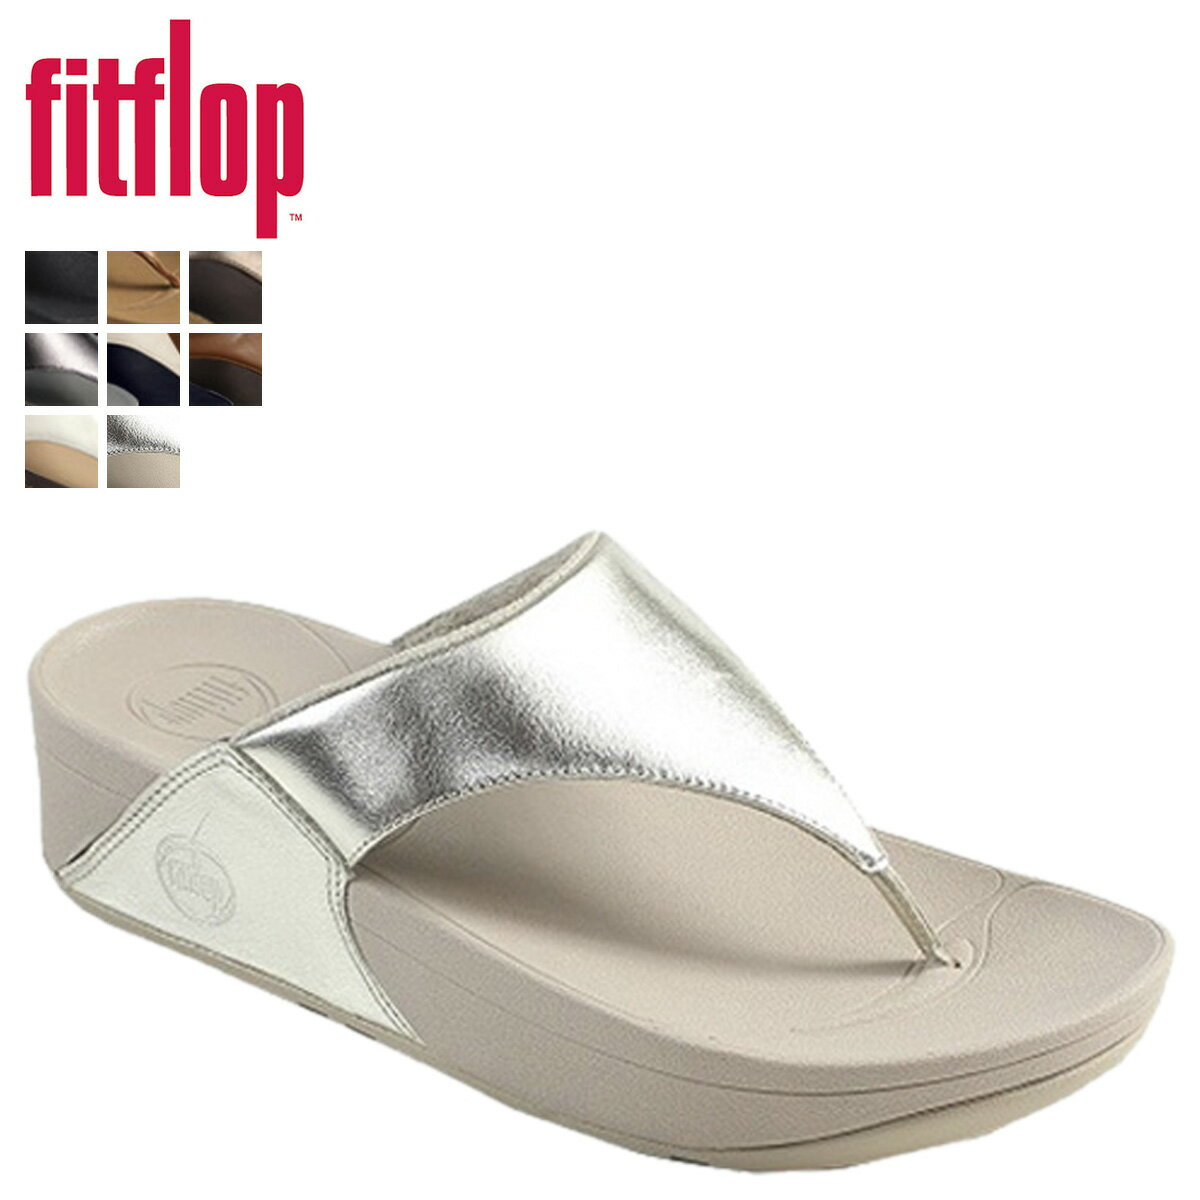 972b7fa60 Fitflop Price List In The Philippines - Avanti House School